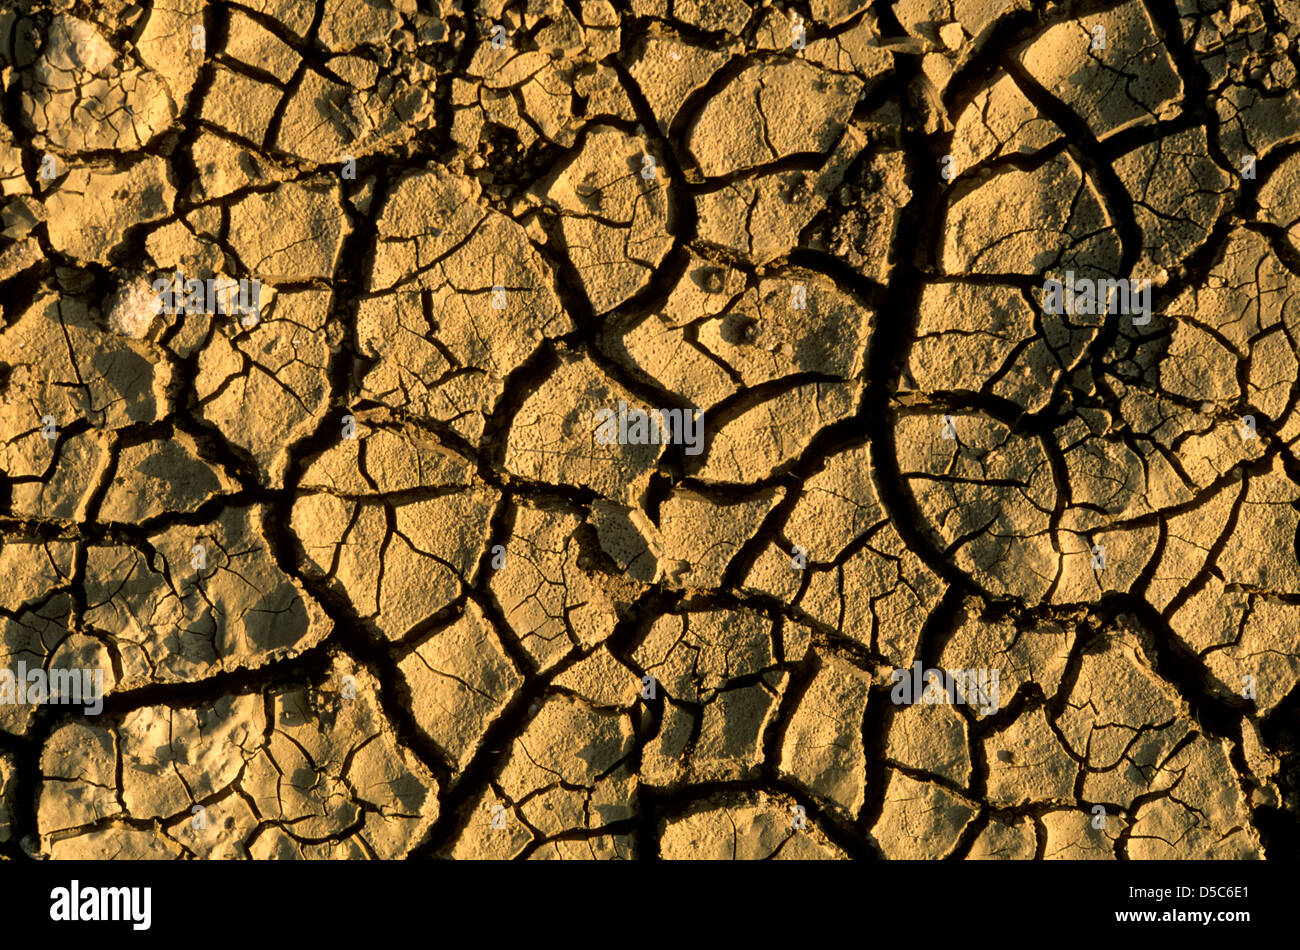 Parched soil - Stock Image